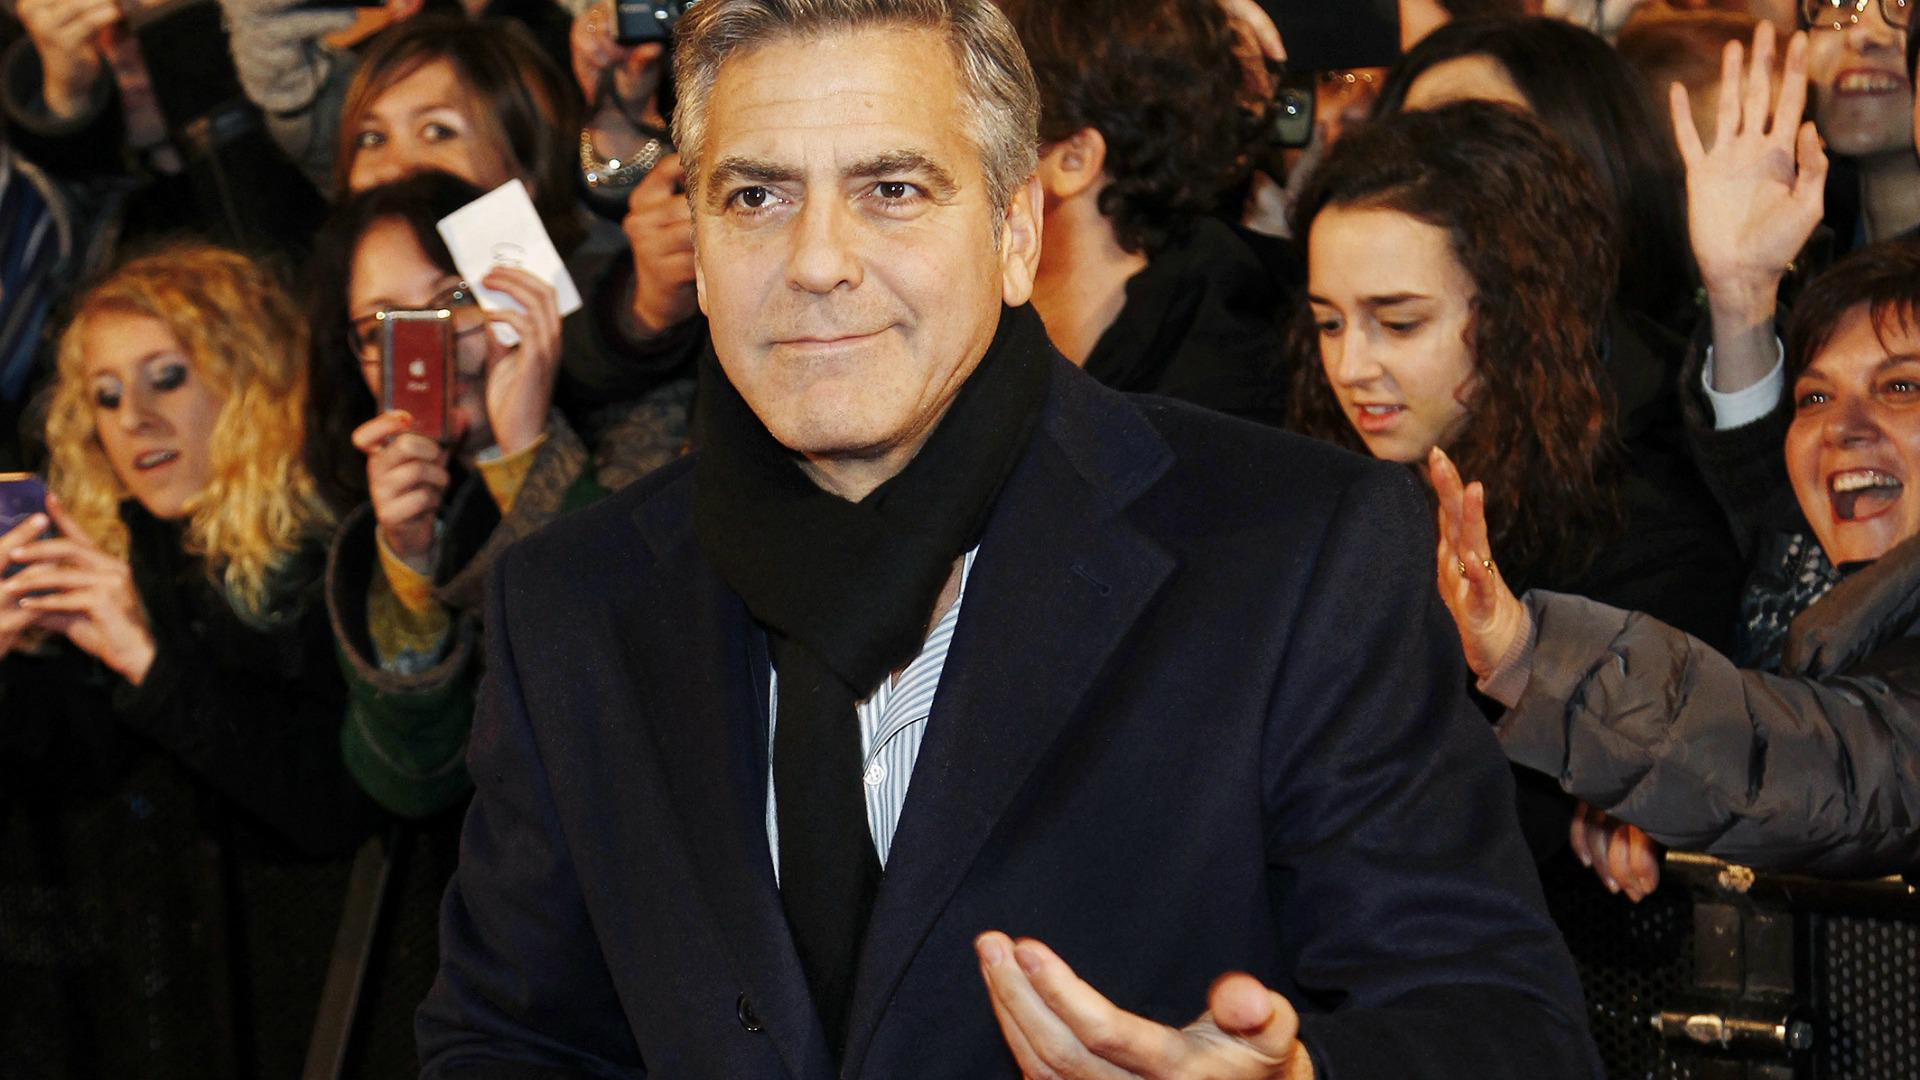 George Clooney responds to Daily Mail article, says it's completely fabricated